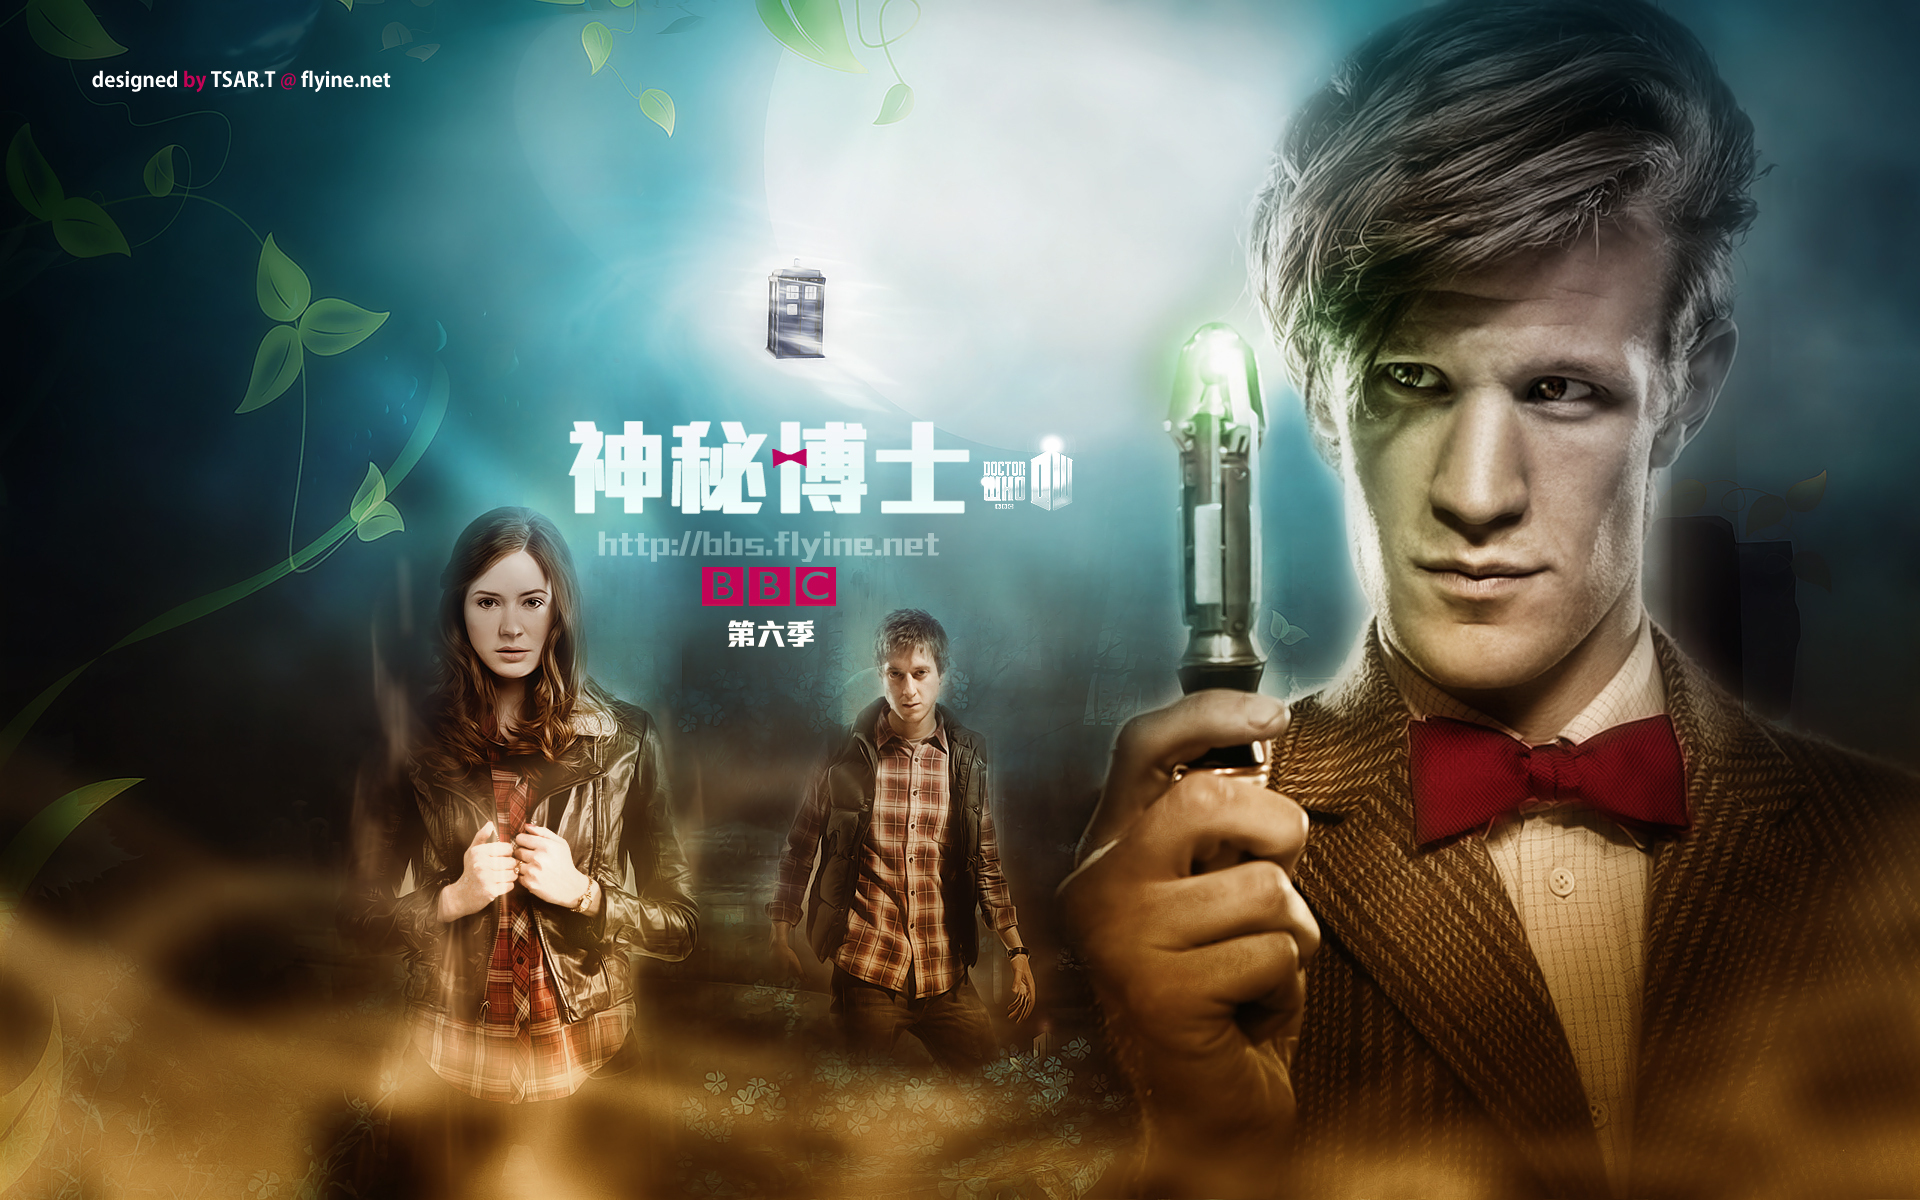 Download Doctor Who Wallpaper 1920x1200 pixel Popular HD Wallpaper 1920x1200